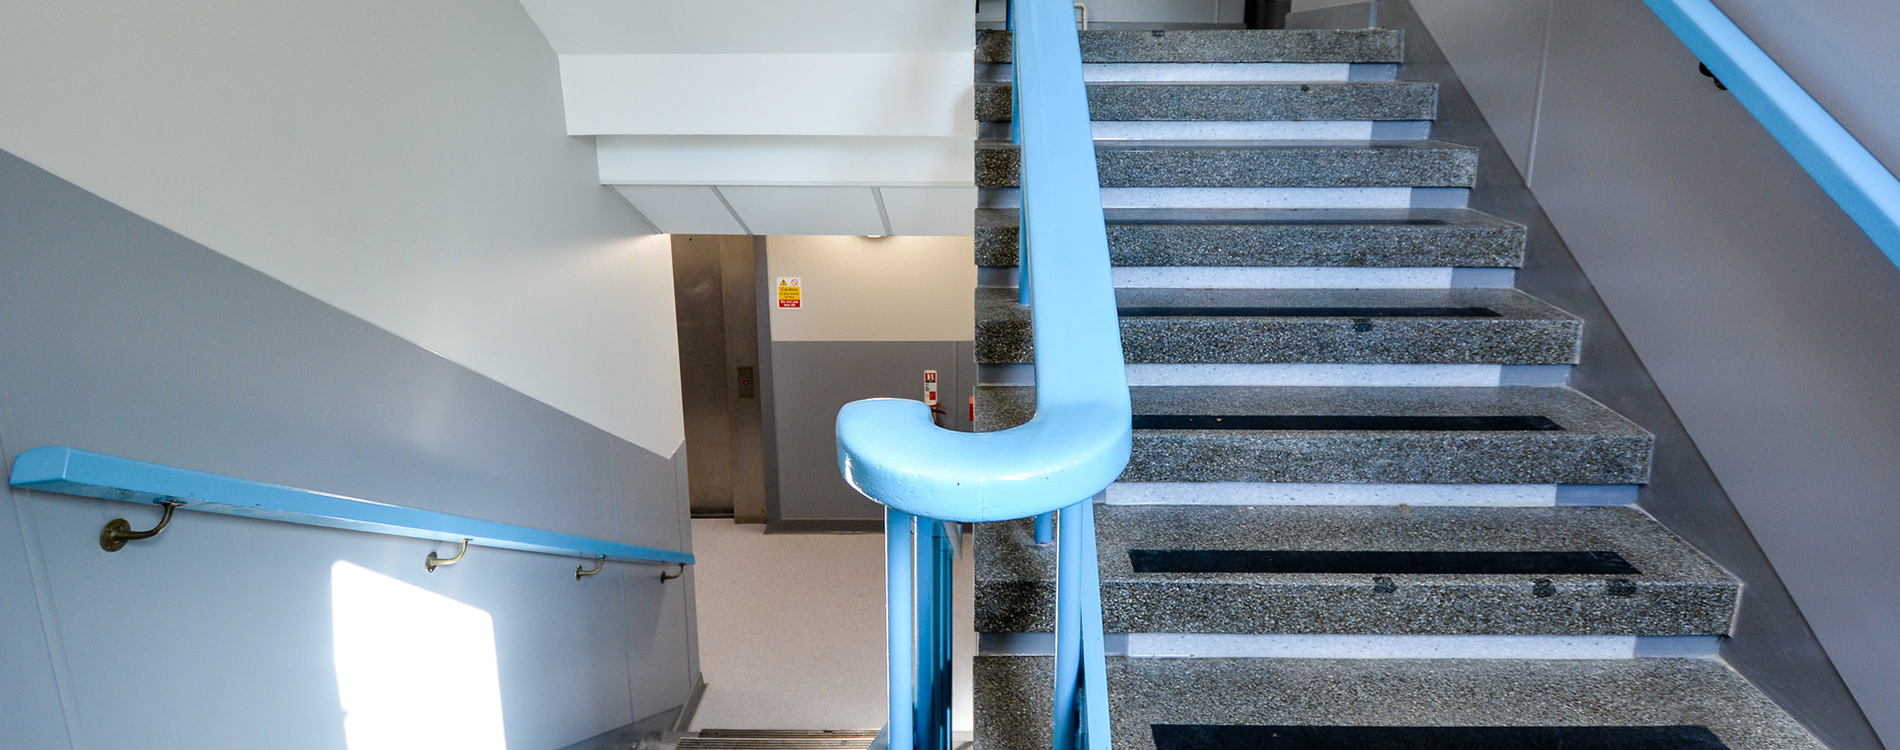 Staircase with a blue painted rail inside a police station refurbishment